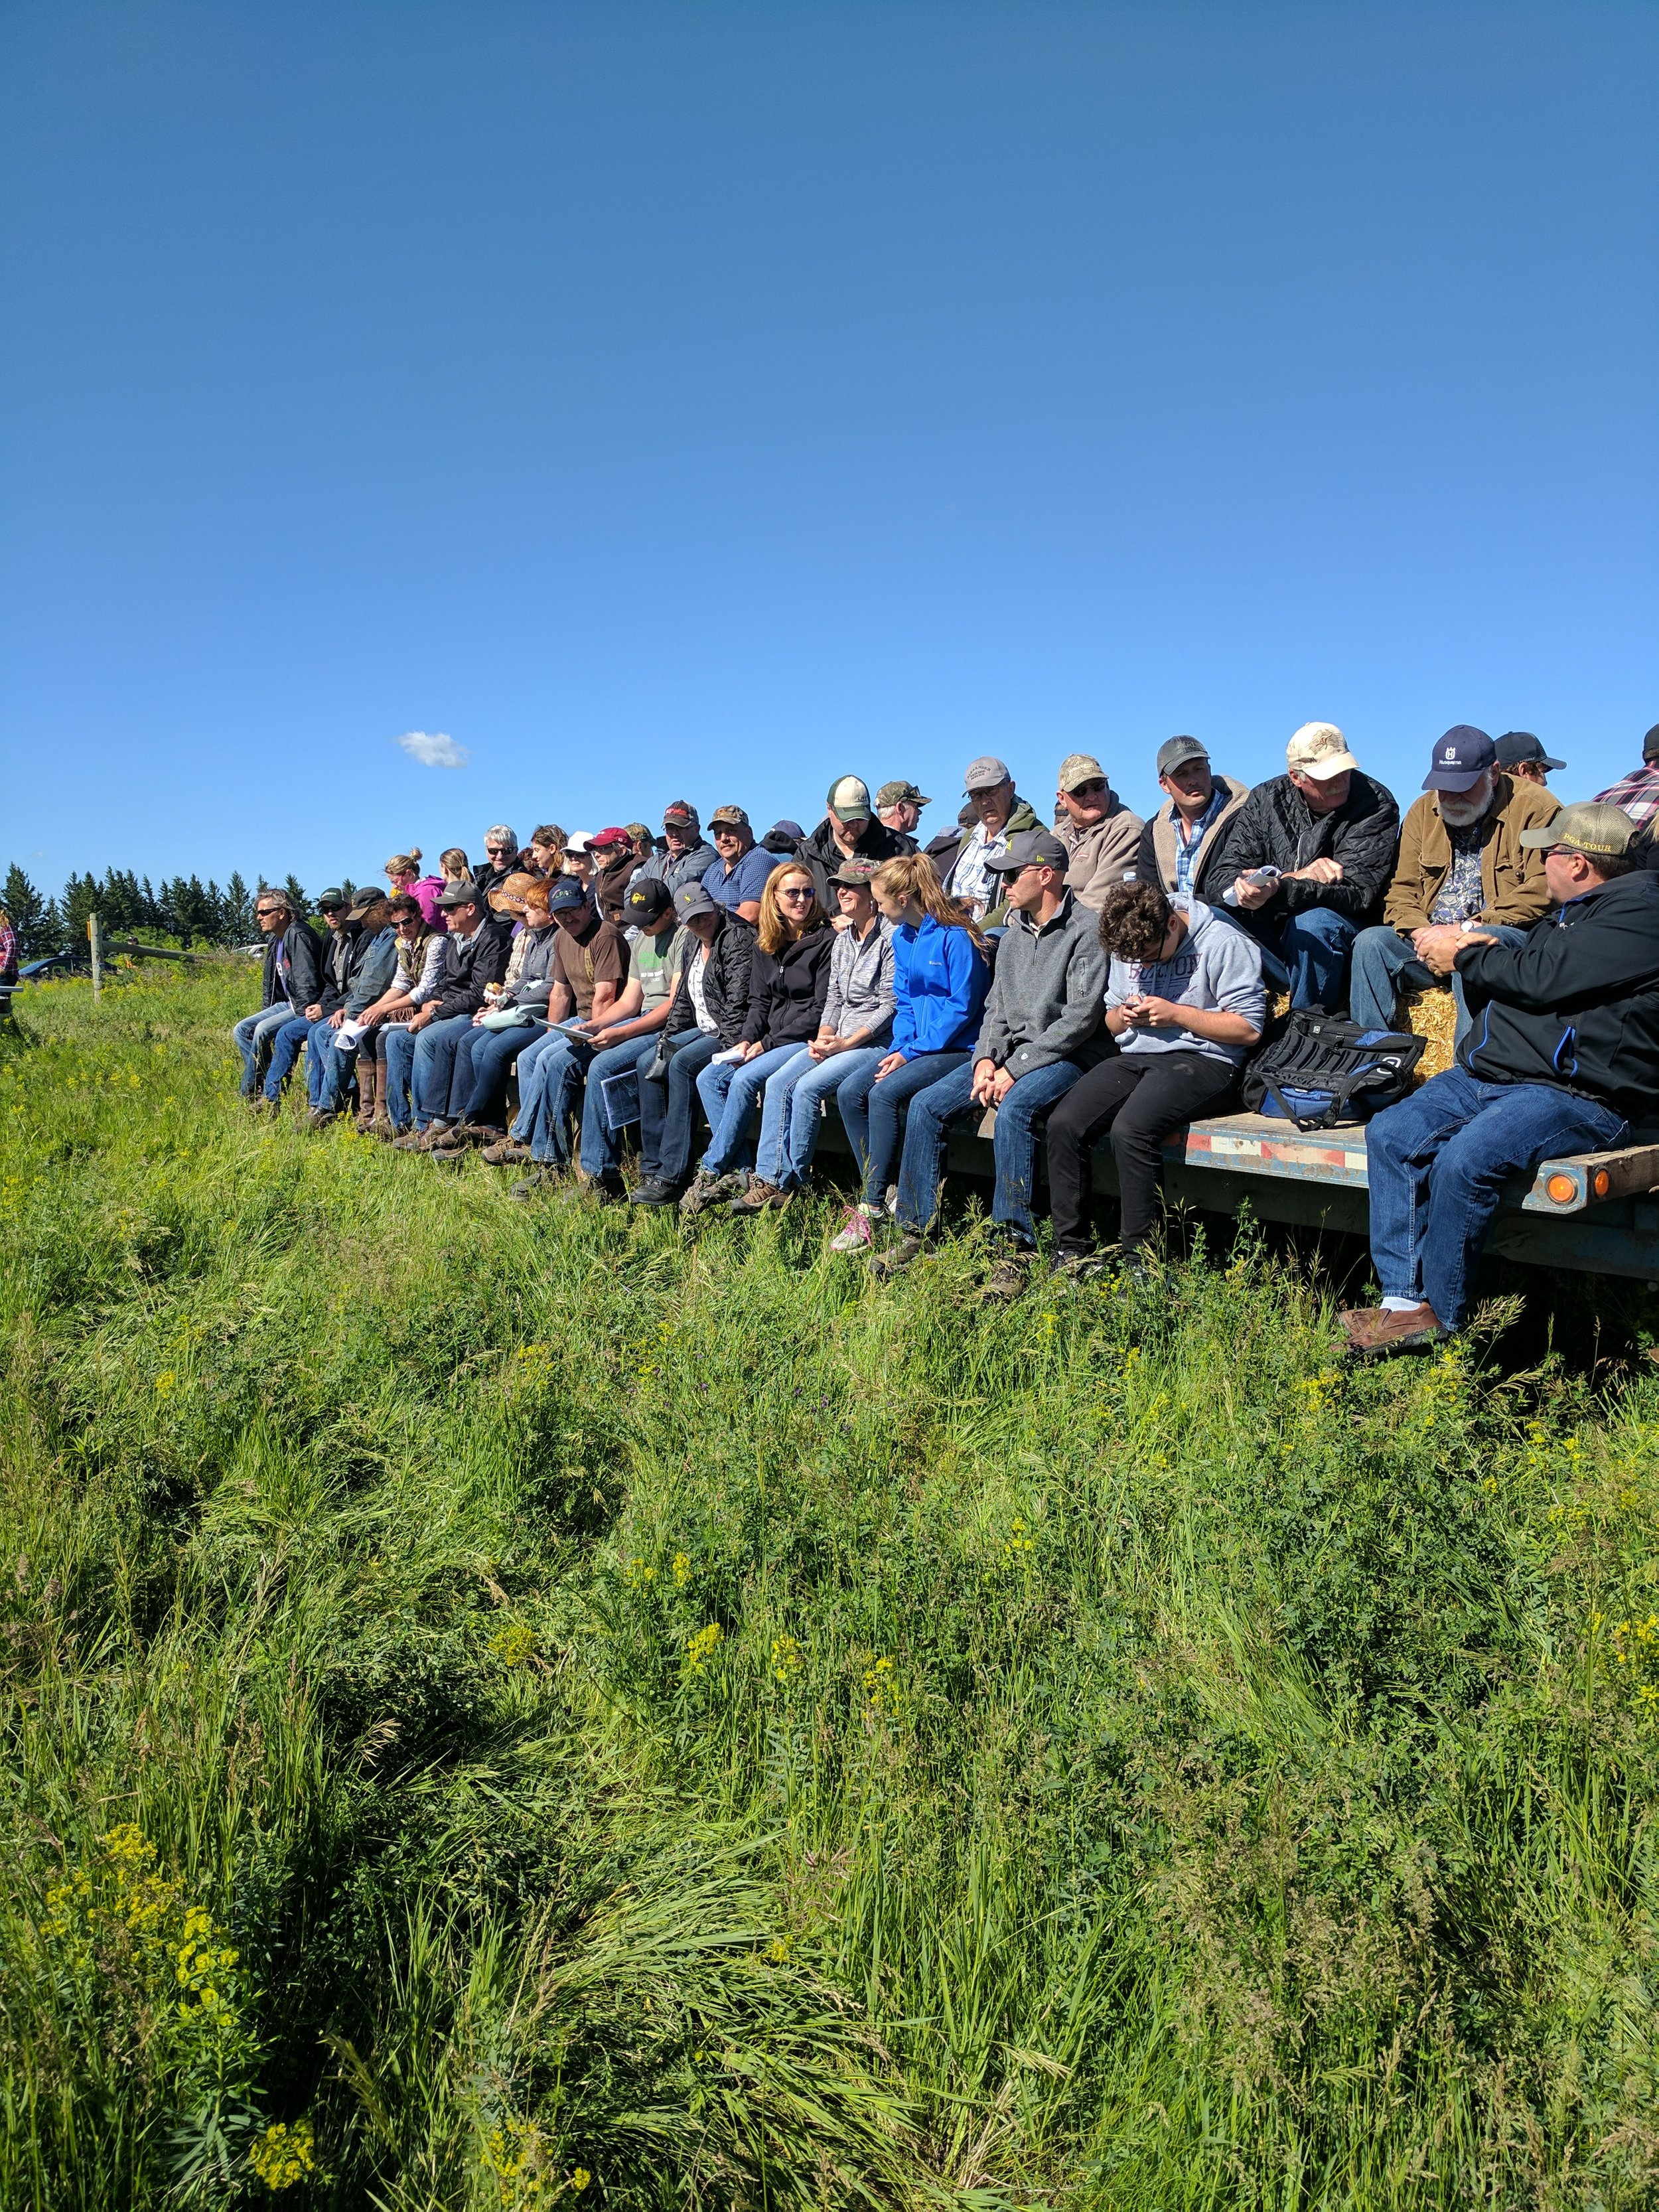 The full wagon at 1st Street Pasture Tour 2017